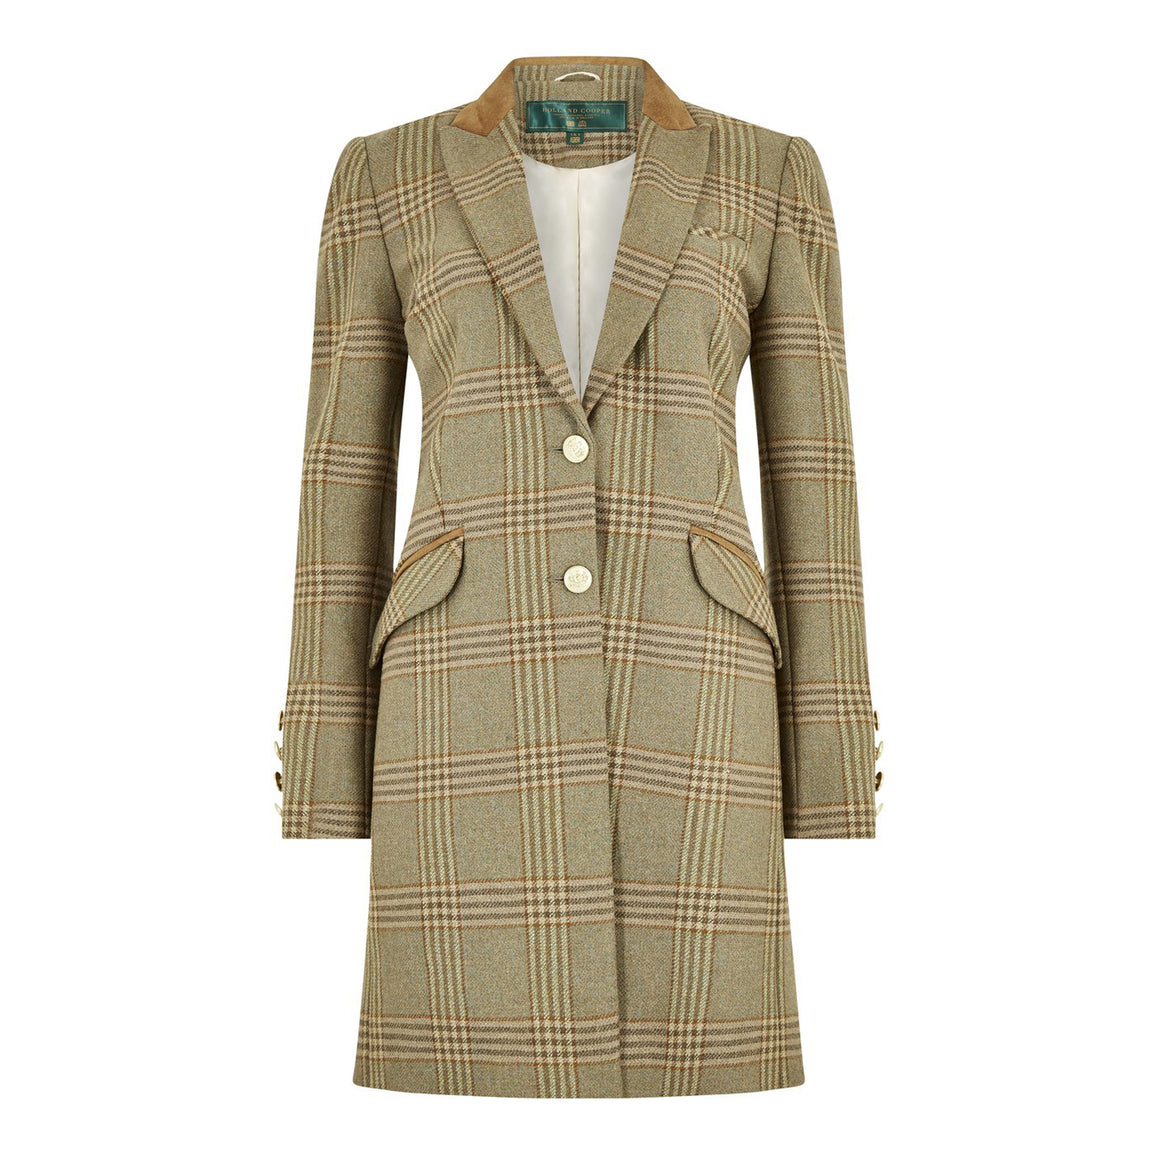 Kempton Coat for Women in Leverett